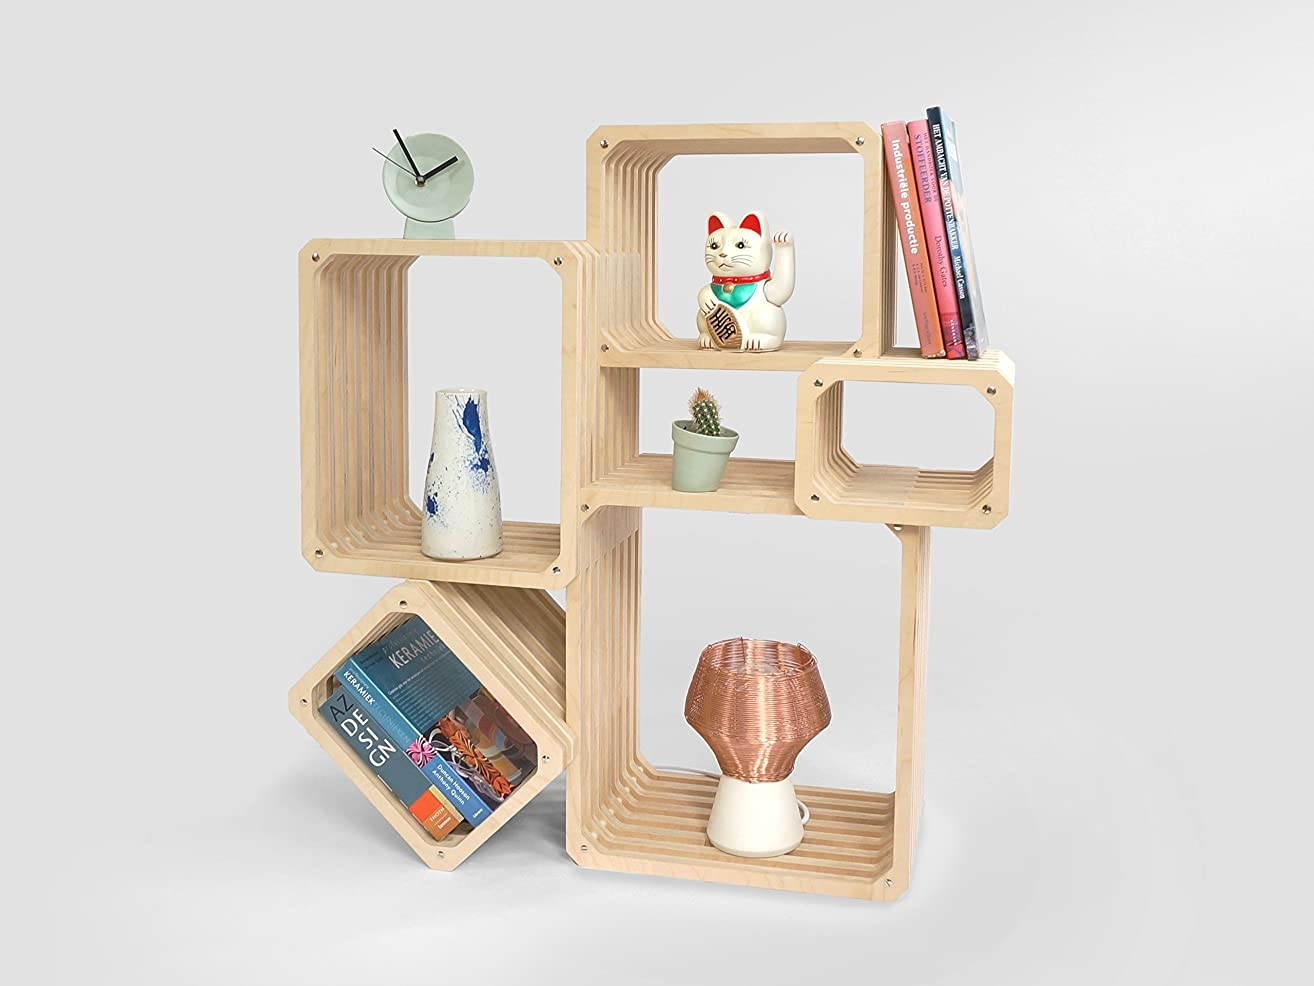 Parallel Shelving - furniture saving hallway book-case book-shelf bed-room accessories unit-s cube-s storage space for wooden shelf cabinet shelves saver